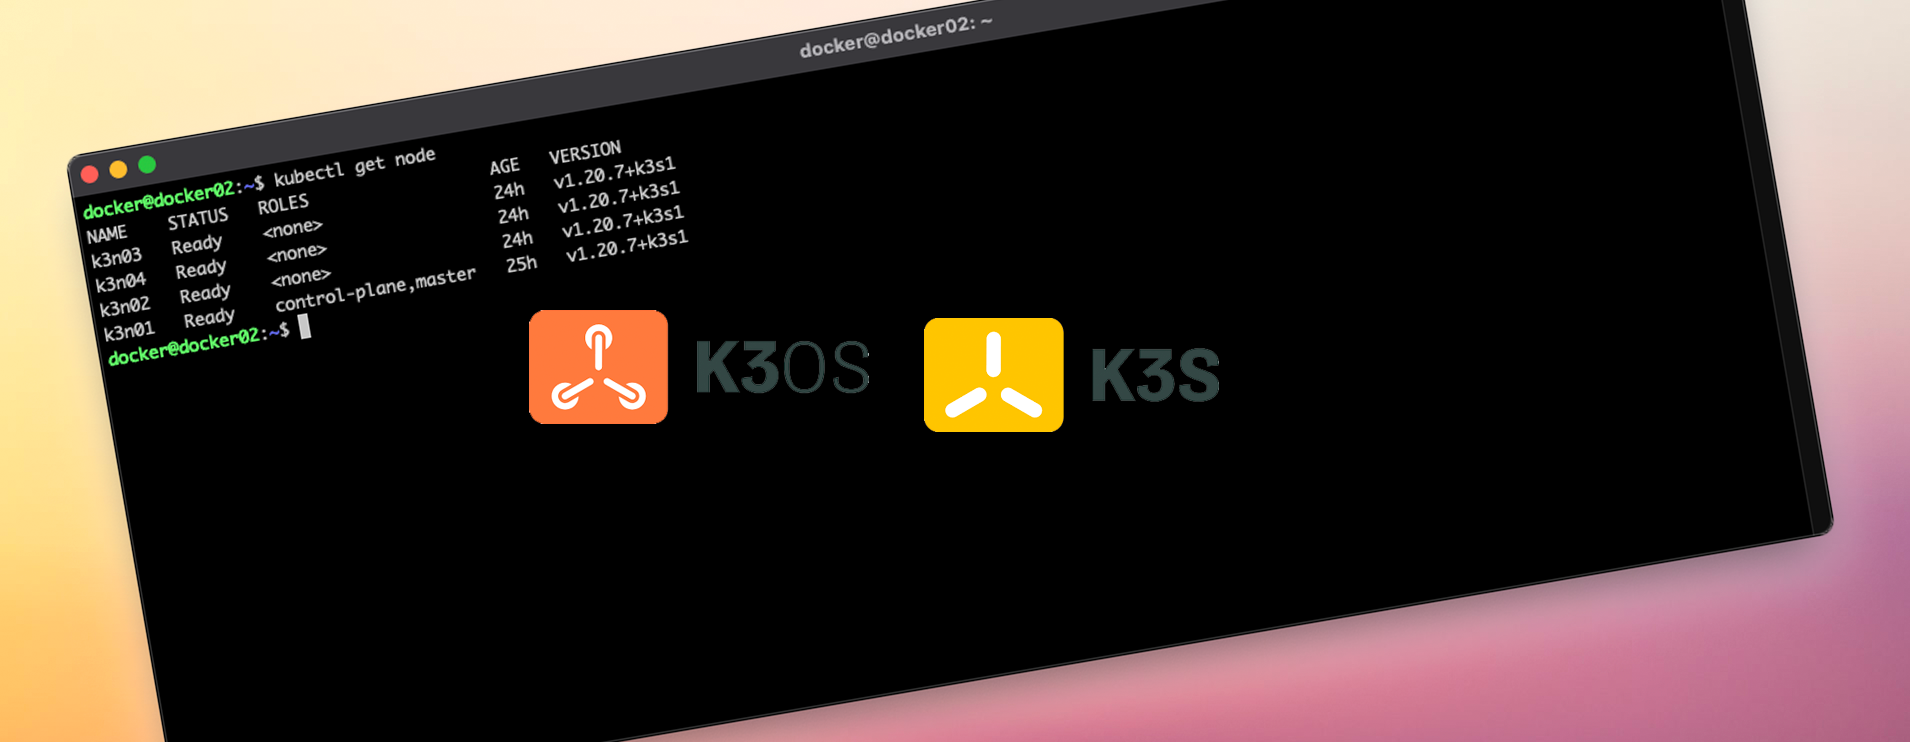 Setting up a Kubernetes cluster with K3s and K3os via Cloud-init